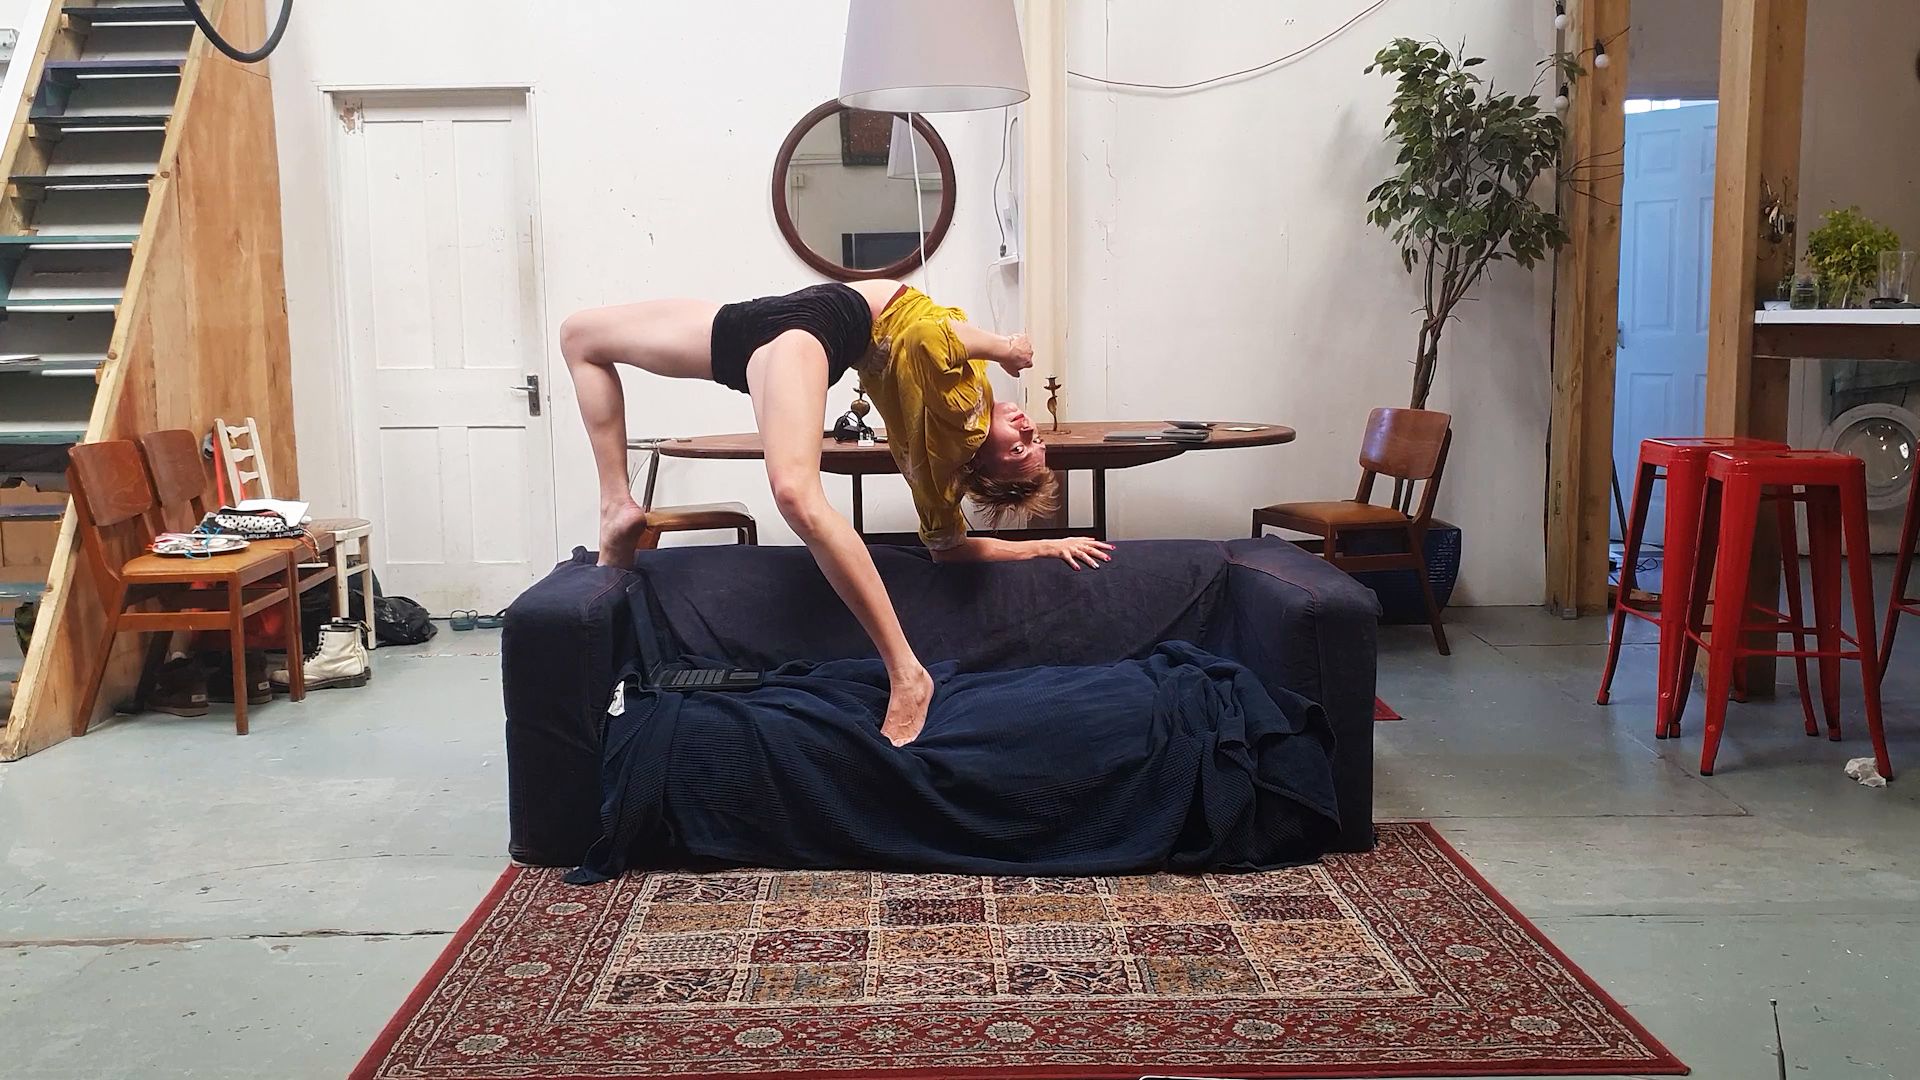 A white woman in her early twenties in a yellow shirt and black shorts is doing a one-handed bridge on her navy blue couch. In front of the couch is a mauve Persian-style rug.